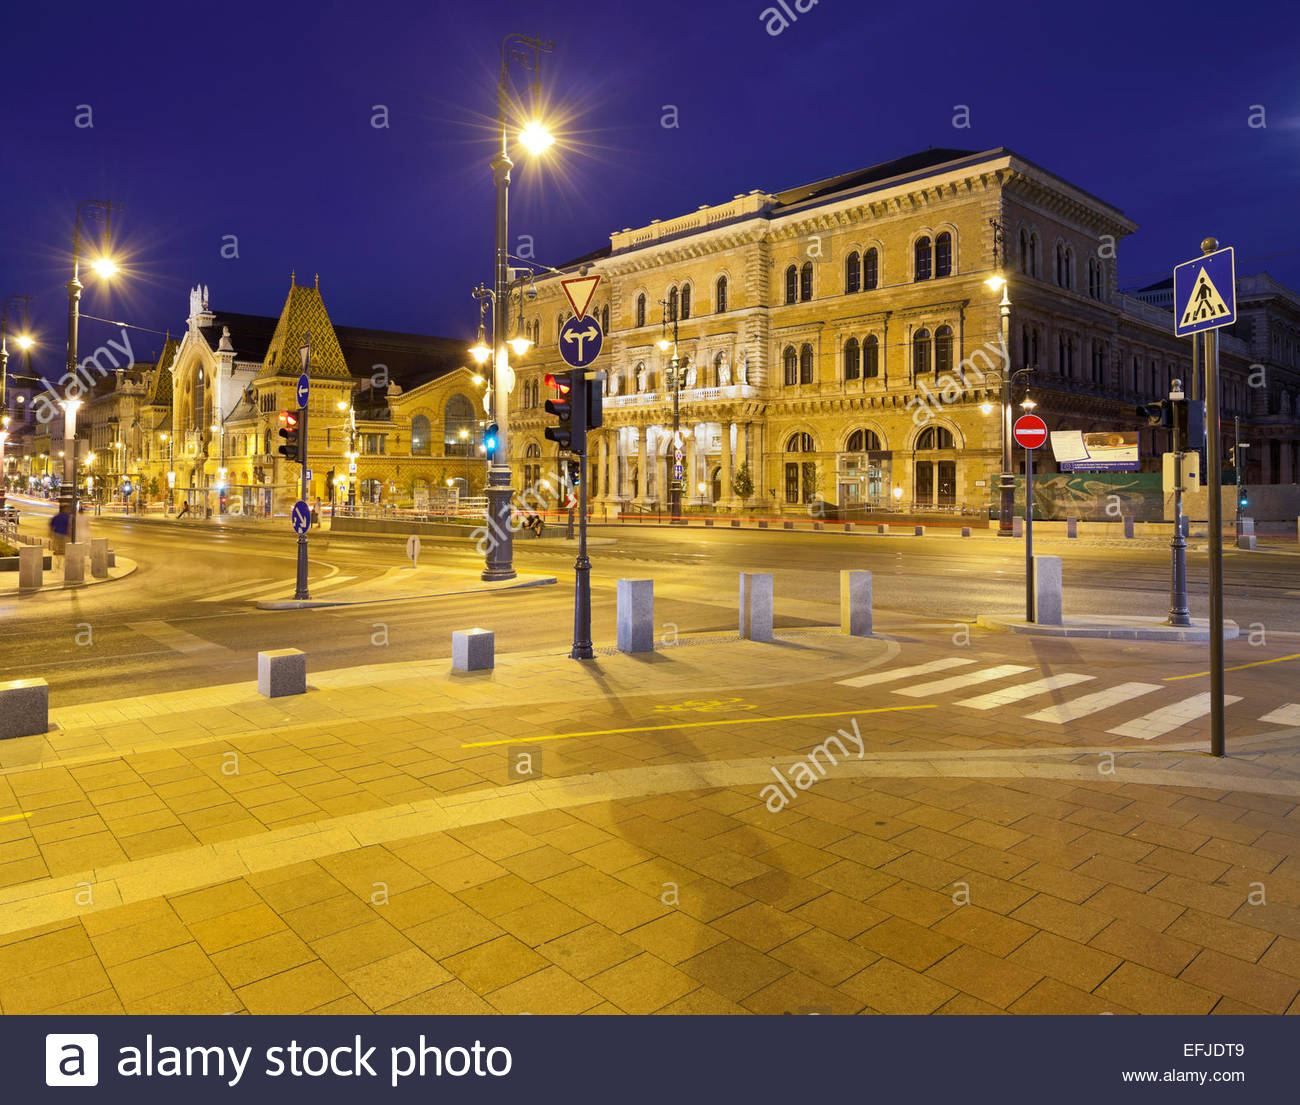 Corvinus University and the markethall at night, Unesco World Cultural Heritage Site, Budapest, Hungary - Stock Image